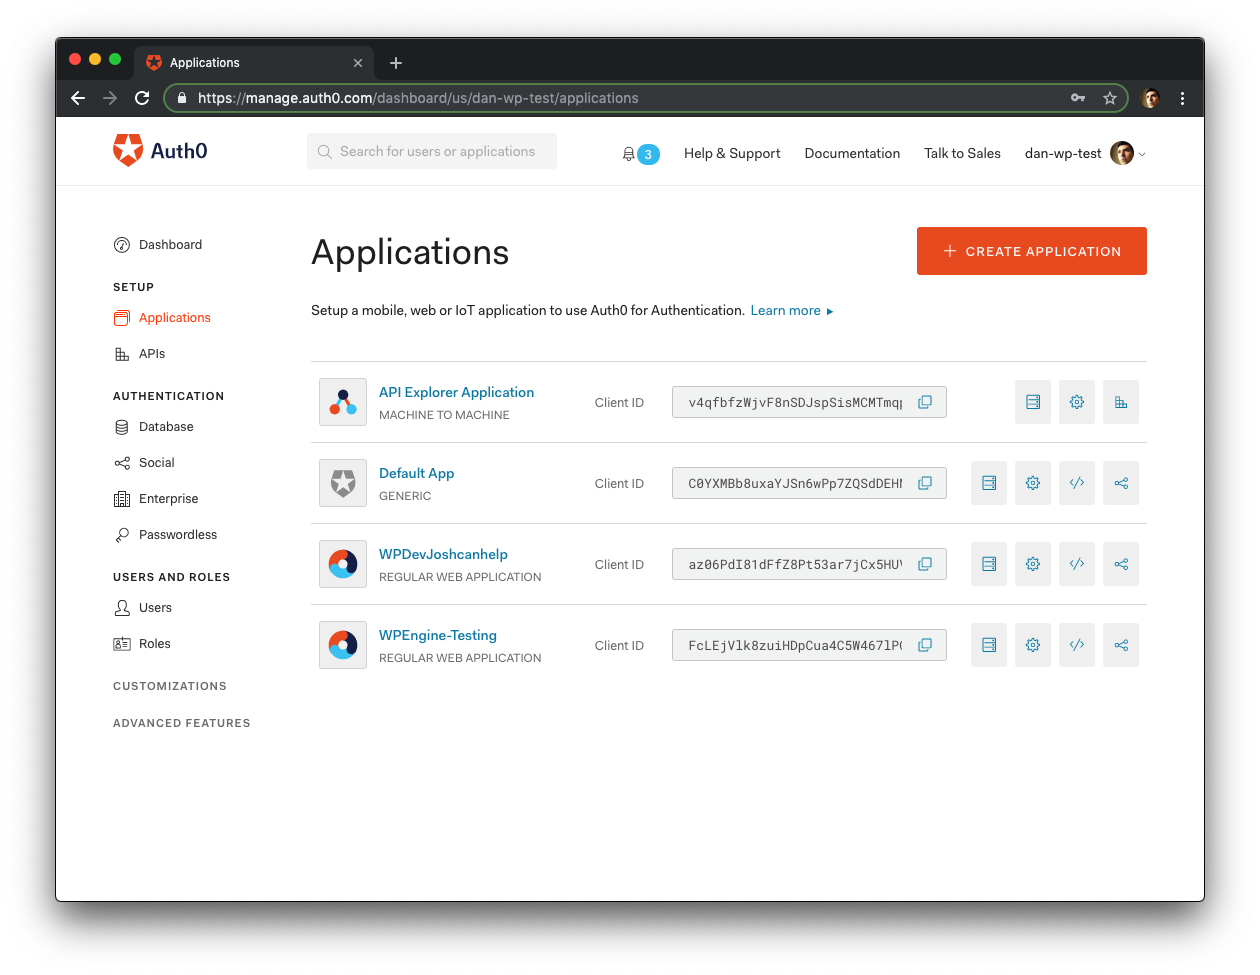 Auth0 applications